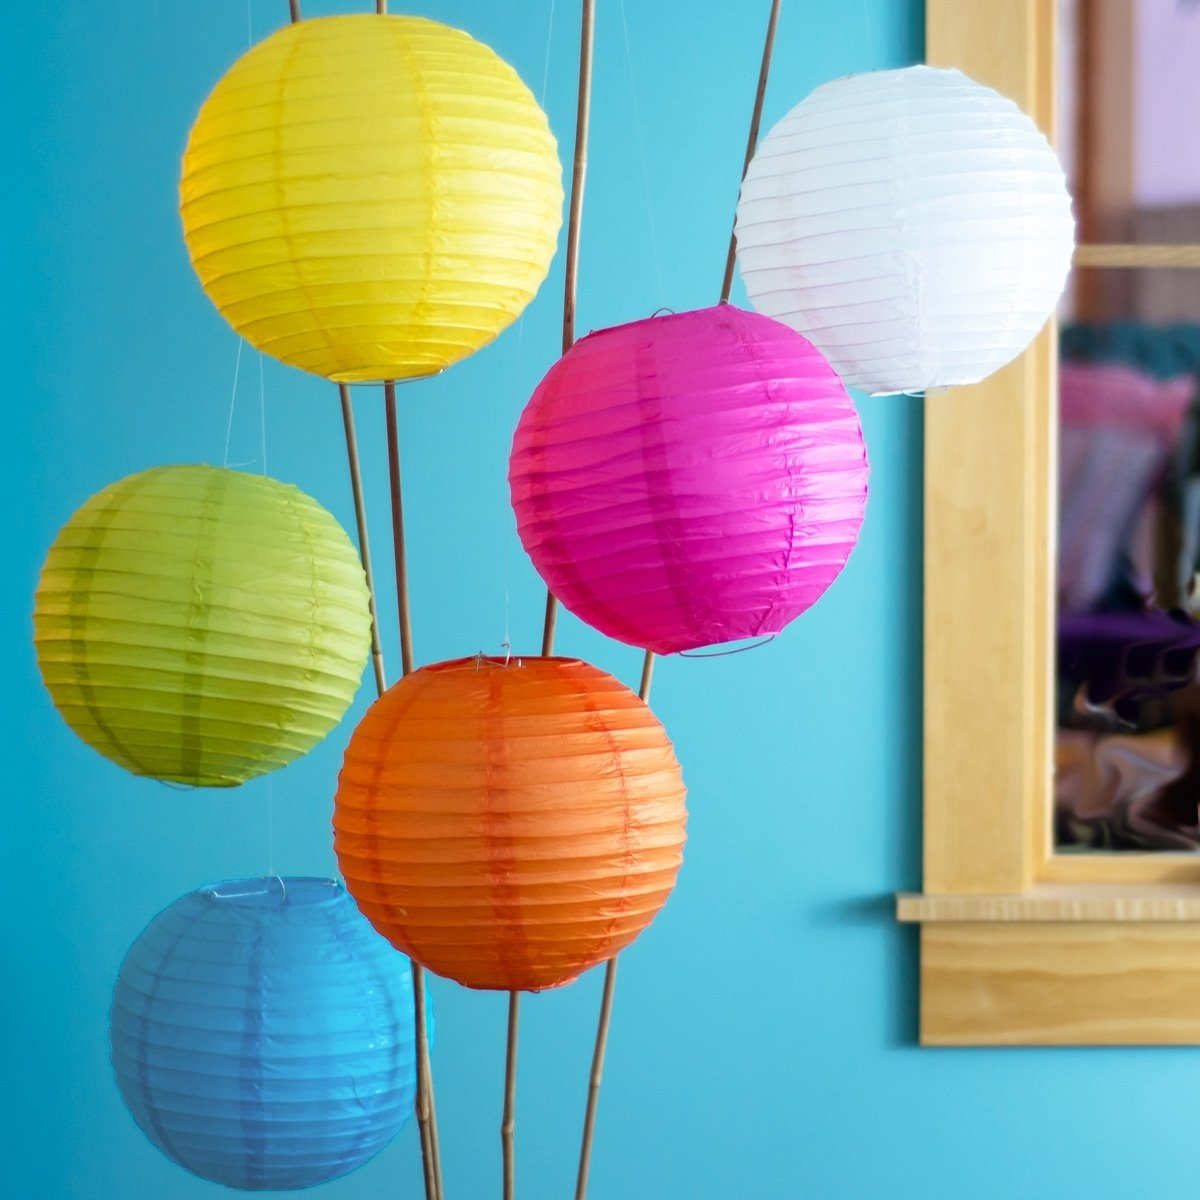 Luna Bazaar Paper Lanterns (10-Inch, Parallel Style Ribbed, Multicolor, Set of 6) - Rice Paper Chinese/Japanese Hanging Decorations - For Home Decor, Parties, and Weddings